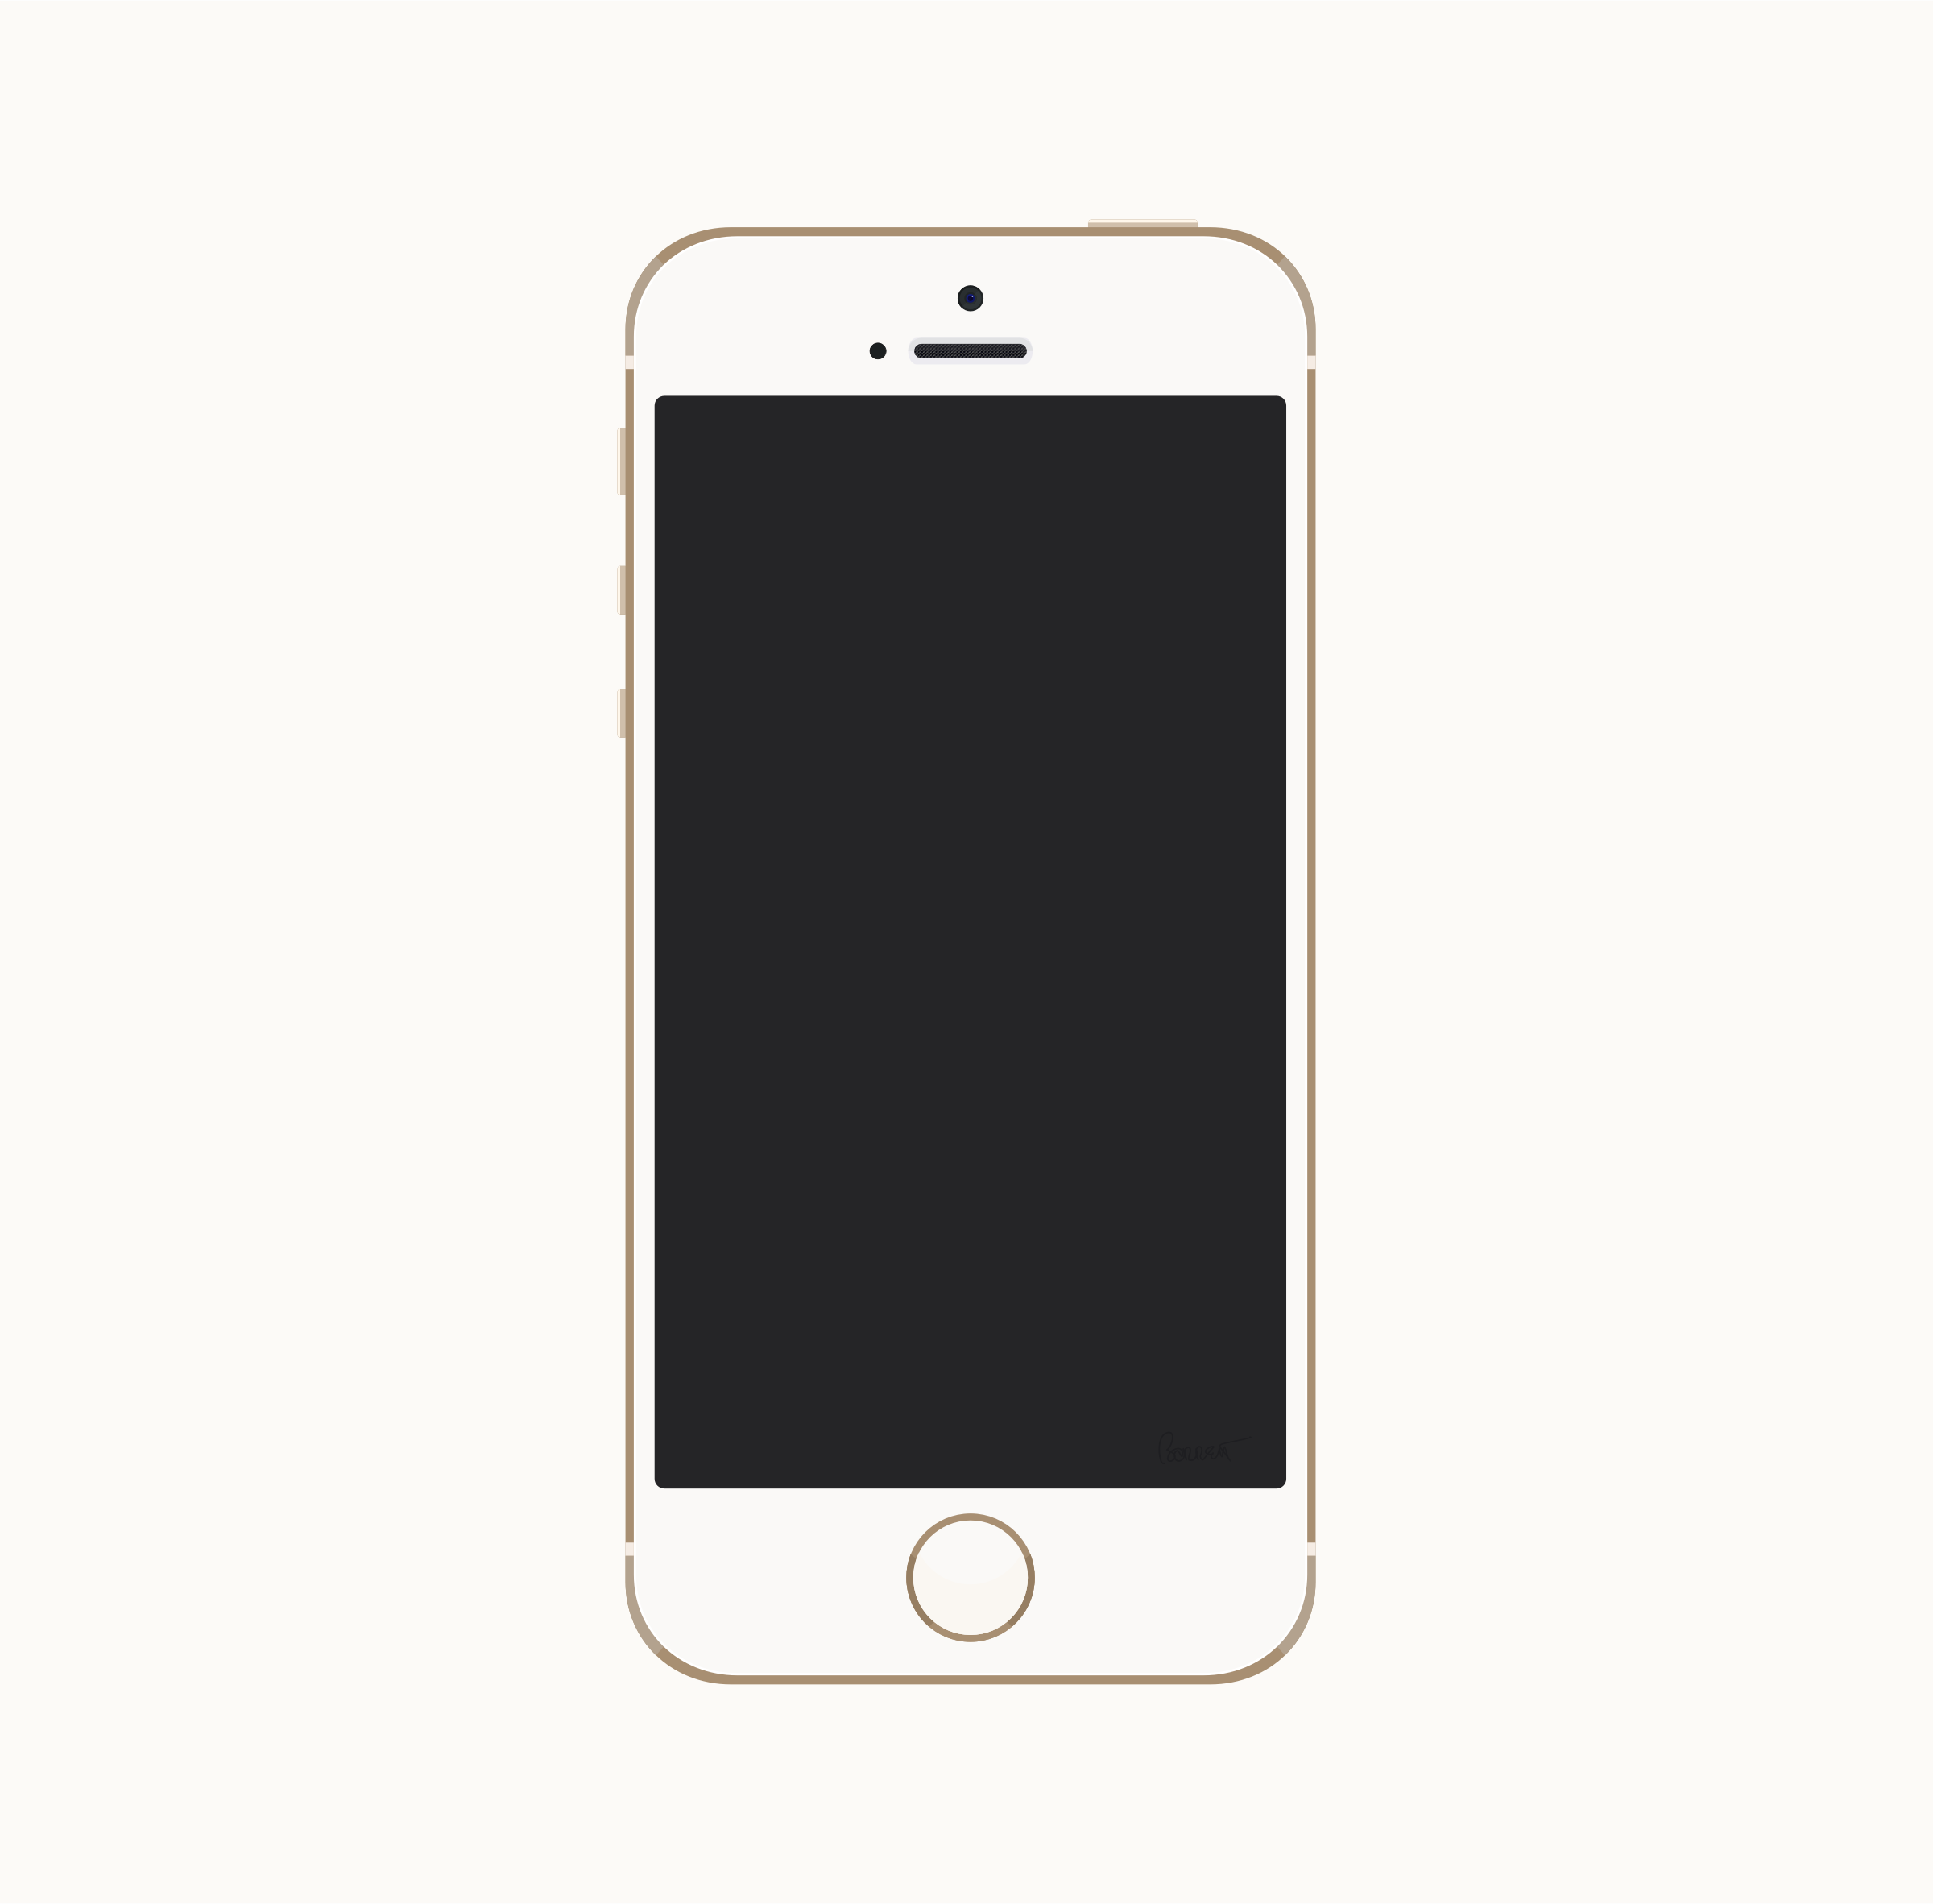 41++ Cell phone clipart transparent background information